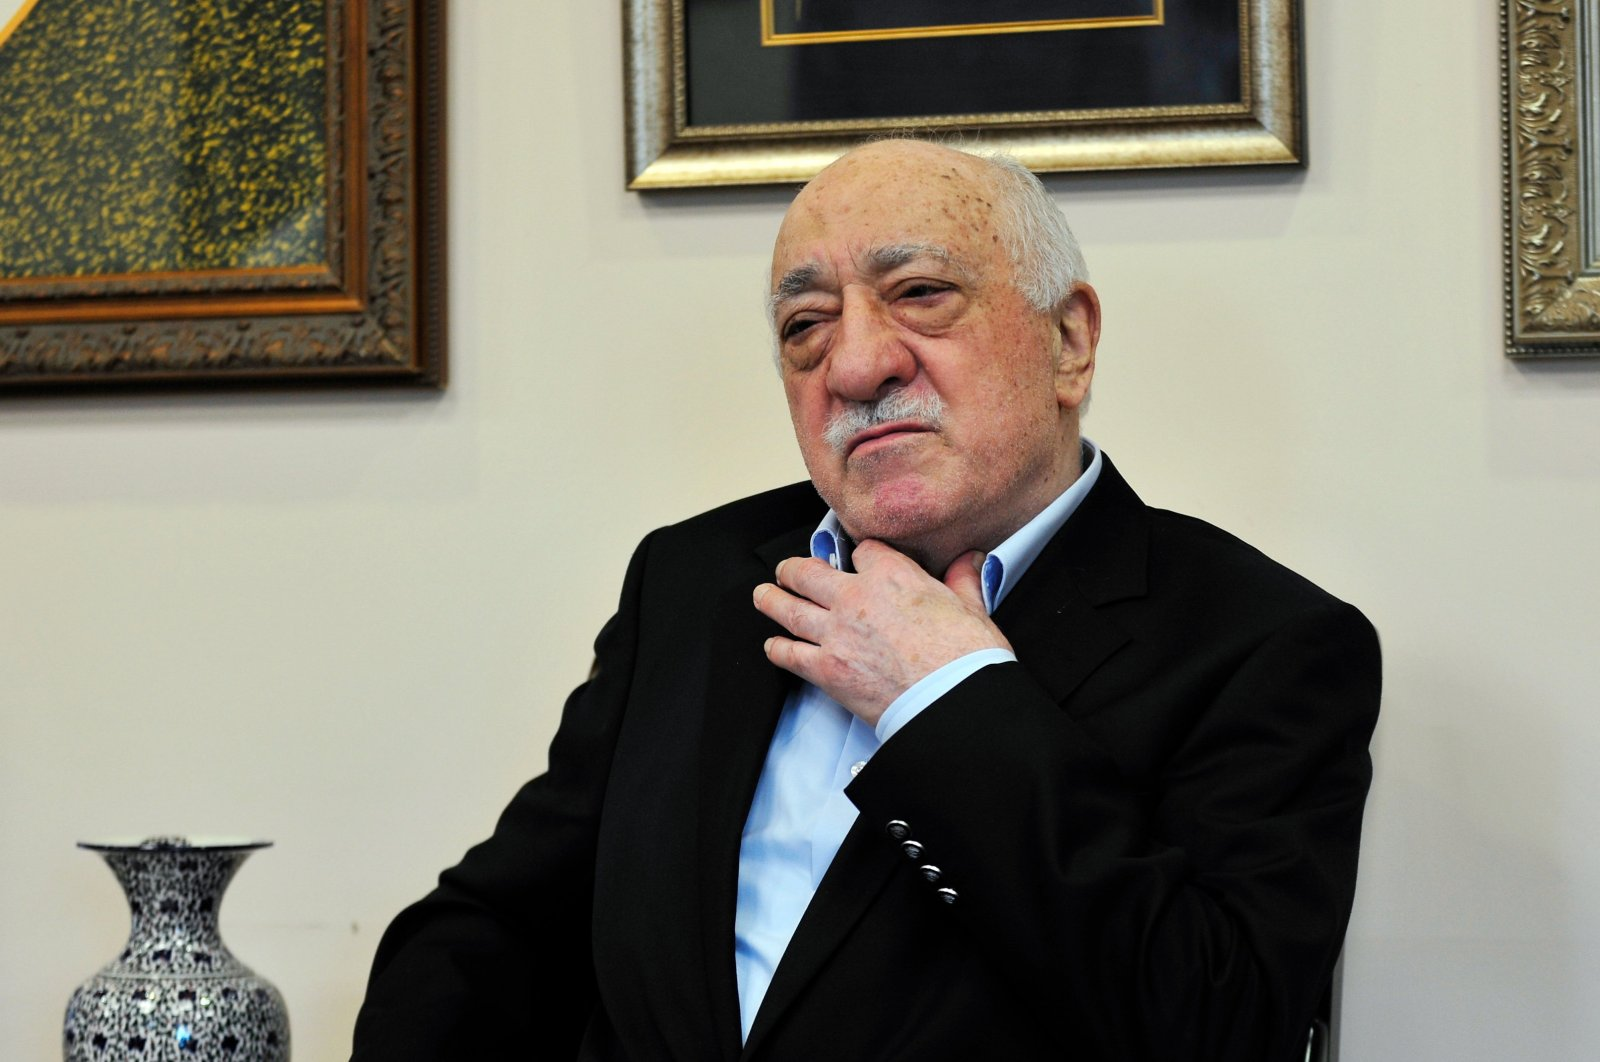 FETÖ leader Fetullah Gülen speaks to members of the media at his compound in Saylorsburg, Pa, Sunday, July 17, 2016. (AP File Photo)